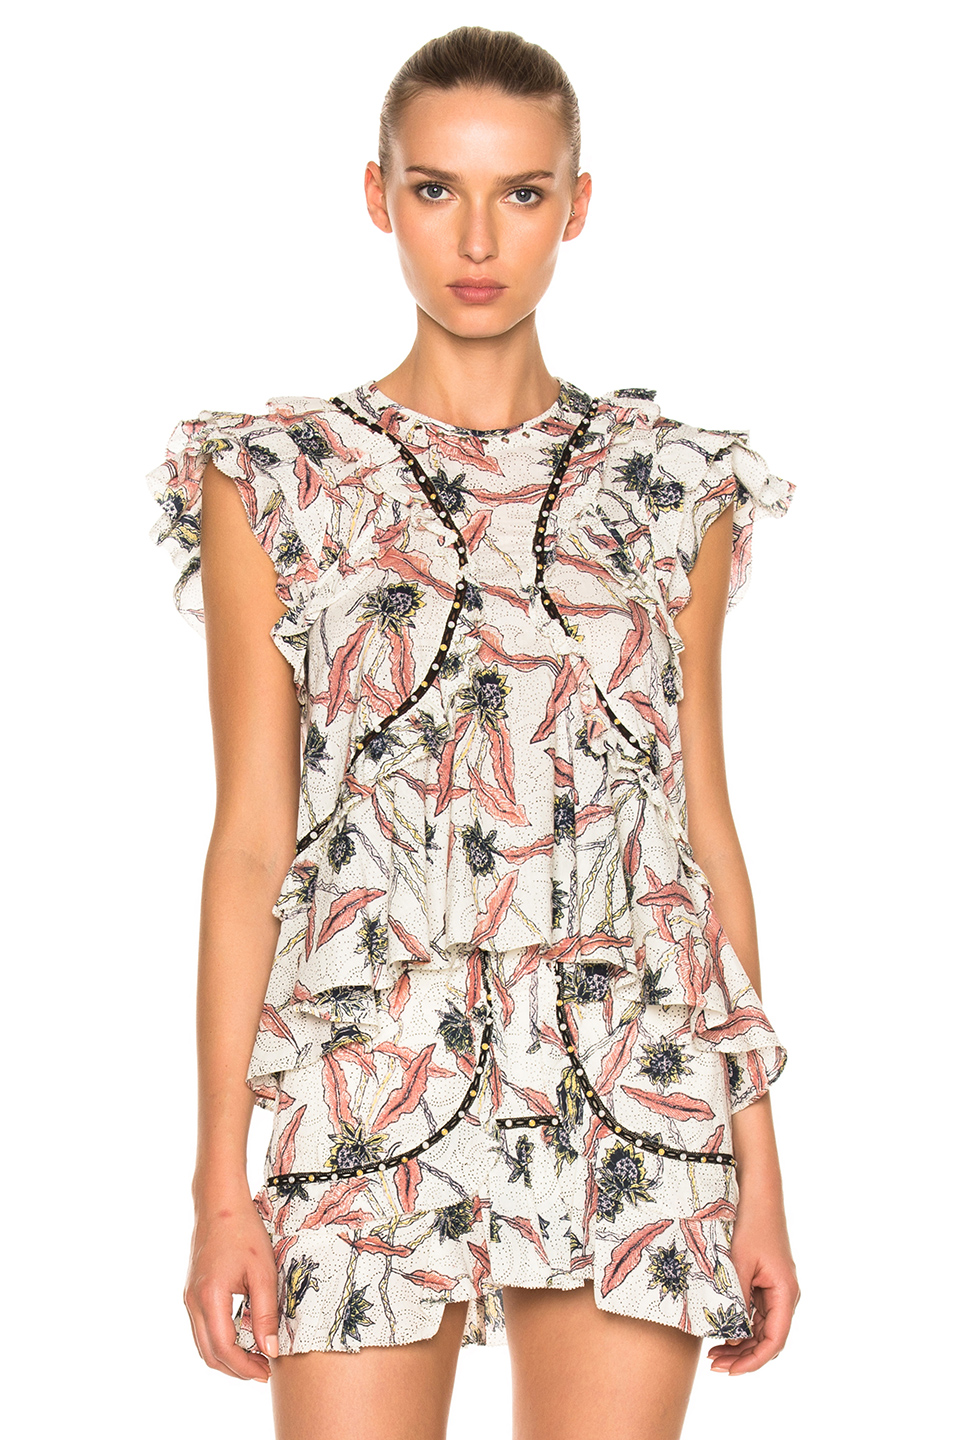 ISABEL MARANT Floral Printed Gauze Ruffled Top, Ecru at FORWARD